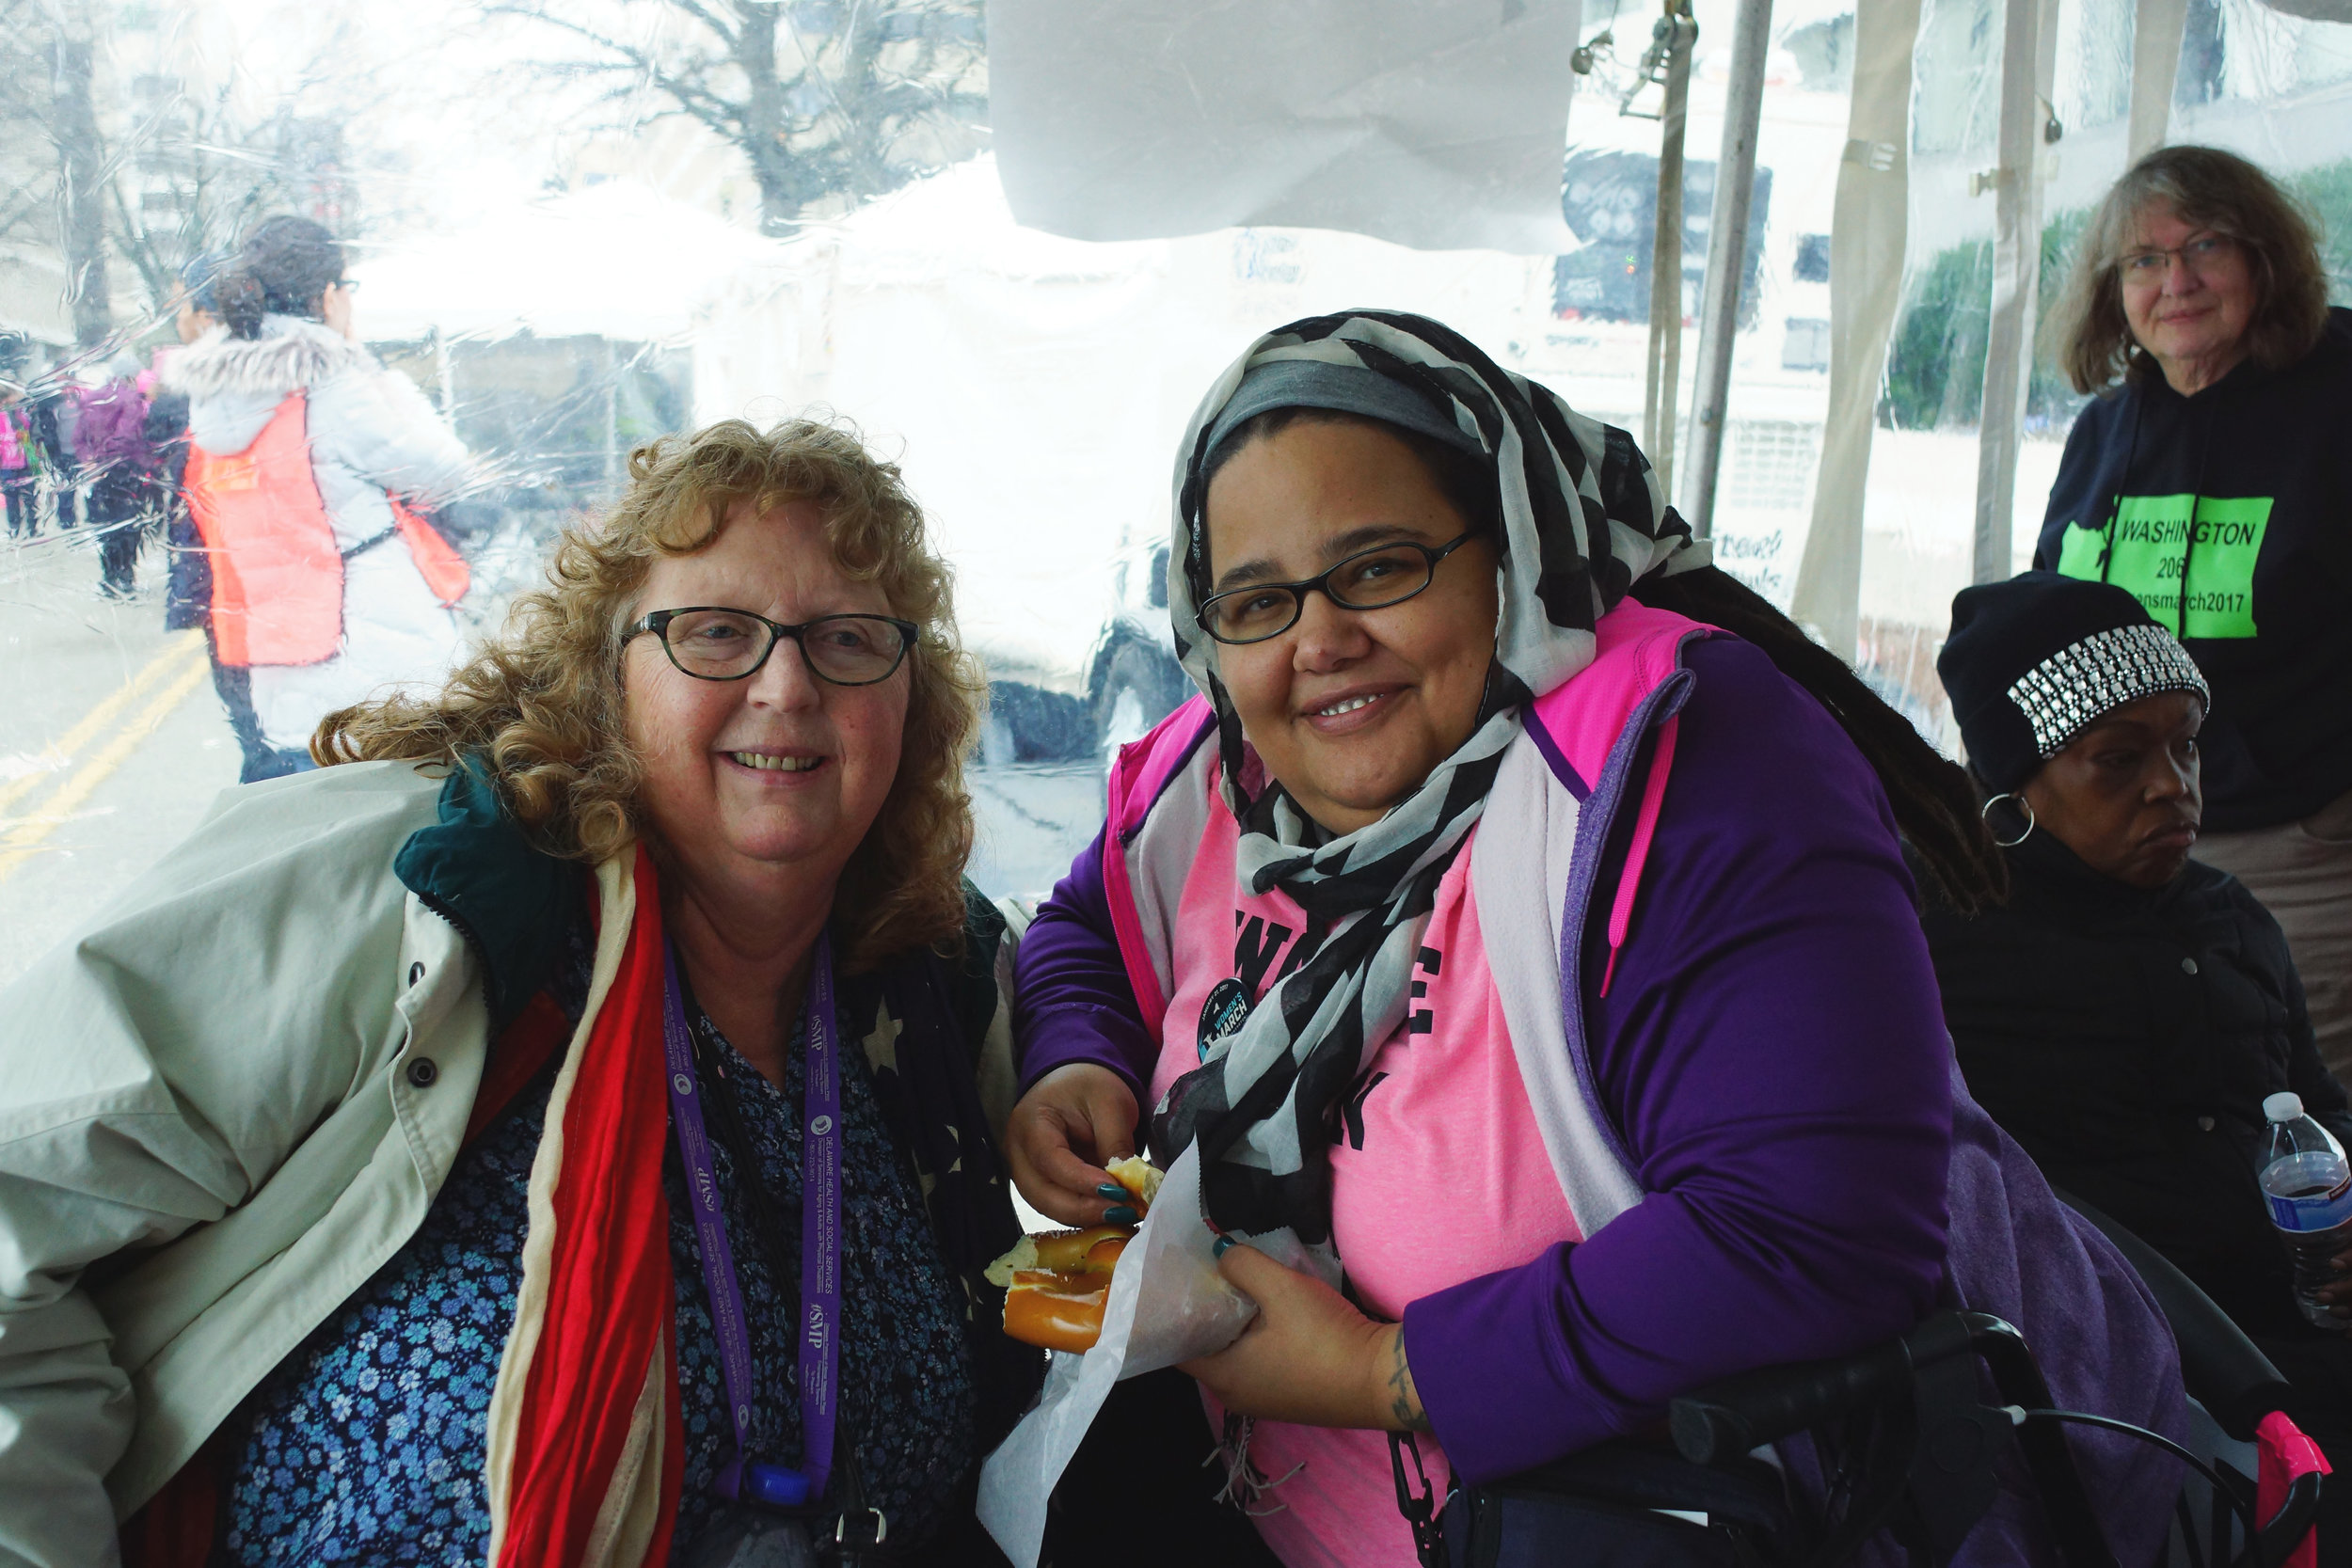 [Image description: Two women in wheelchairs lean toward each other and smile for the camera. The woman on the left, Cathy, is an older white woman with curly hair, glasses, and a red scarf. The women on the right, Kim, has dark skin and wears glasses and a black and white checkered hijab. She holds a hot pretzel and is wearing a bright purple and pink jacket.]